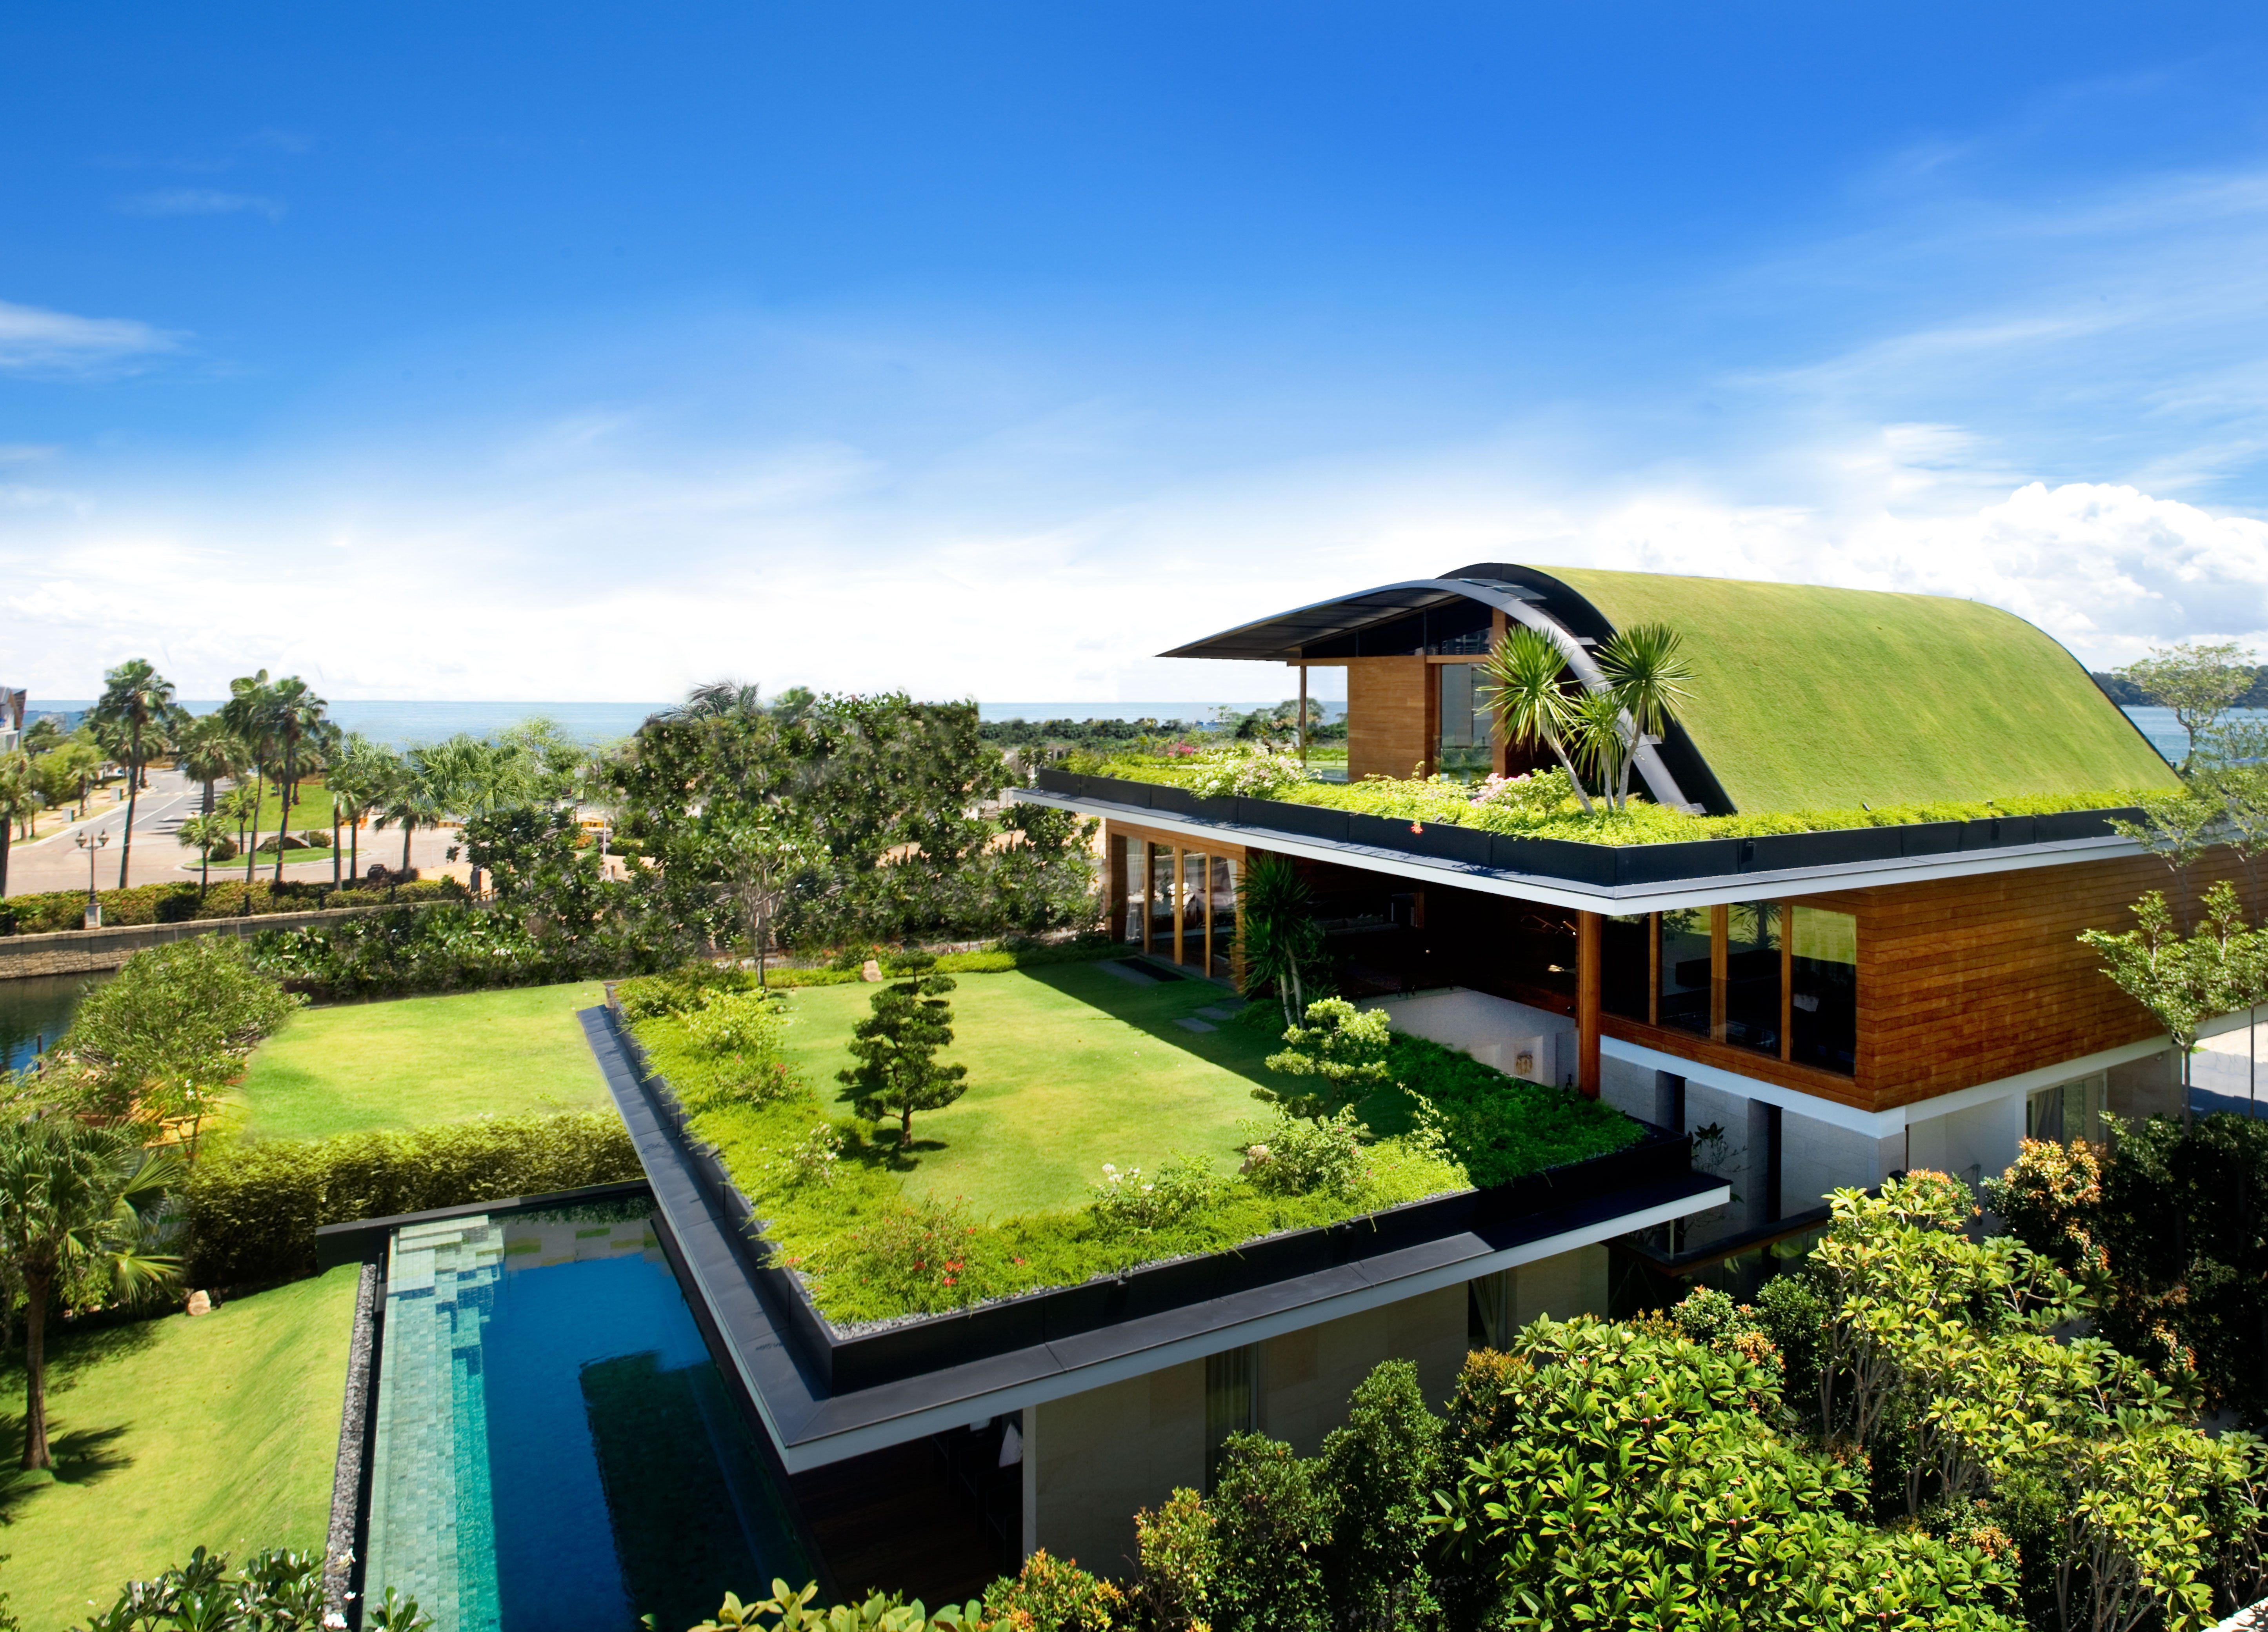 16 Spectacular Green Roofs Around The World Green Architecture Eco Architecture Architecture House